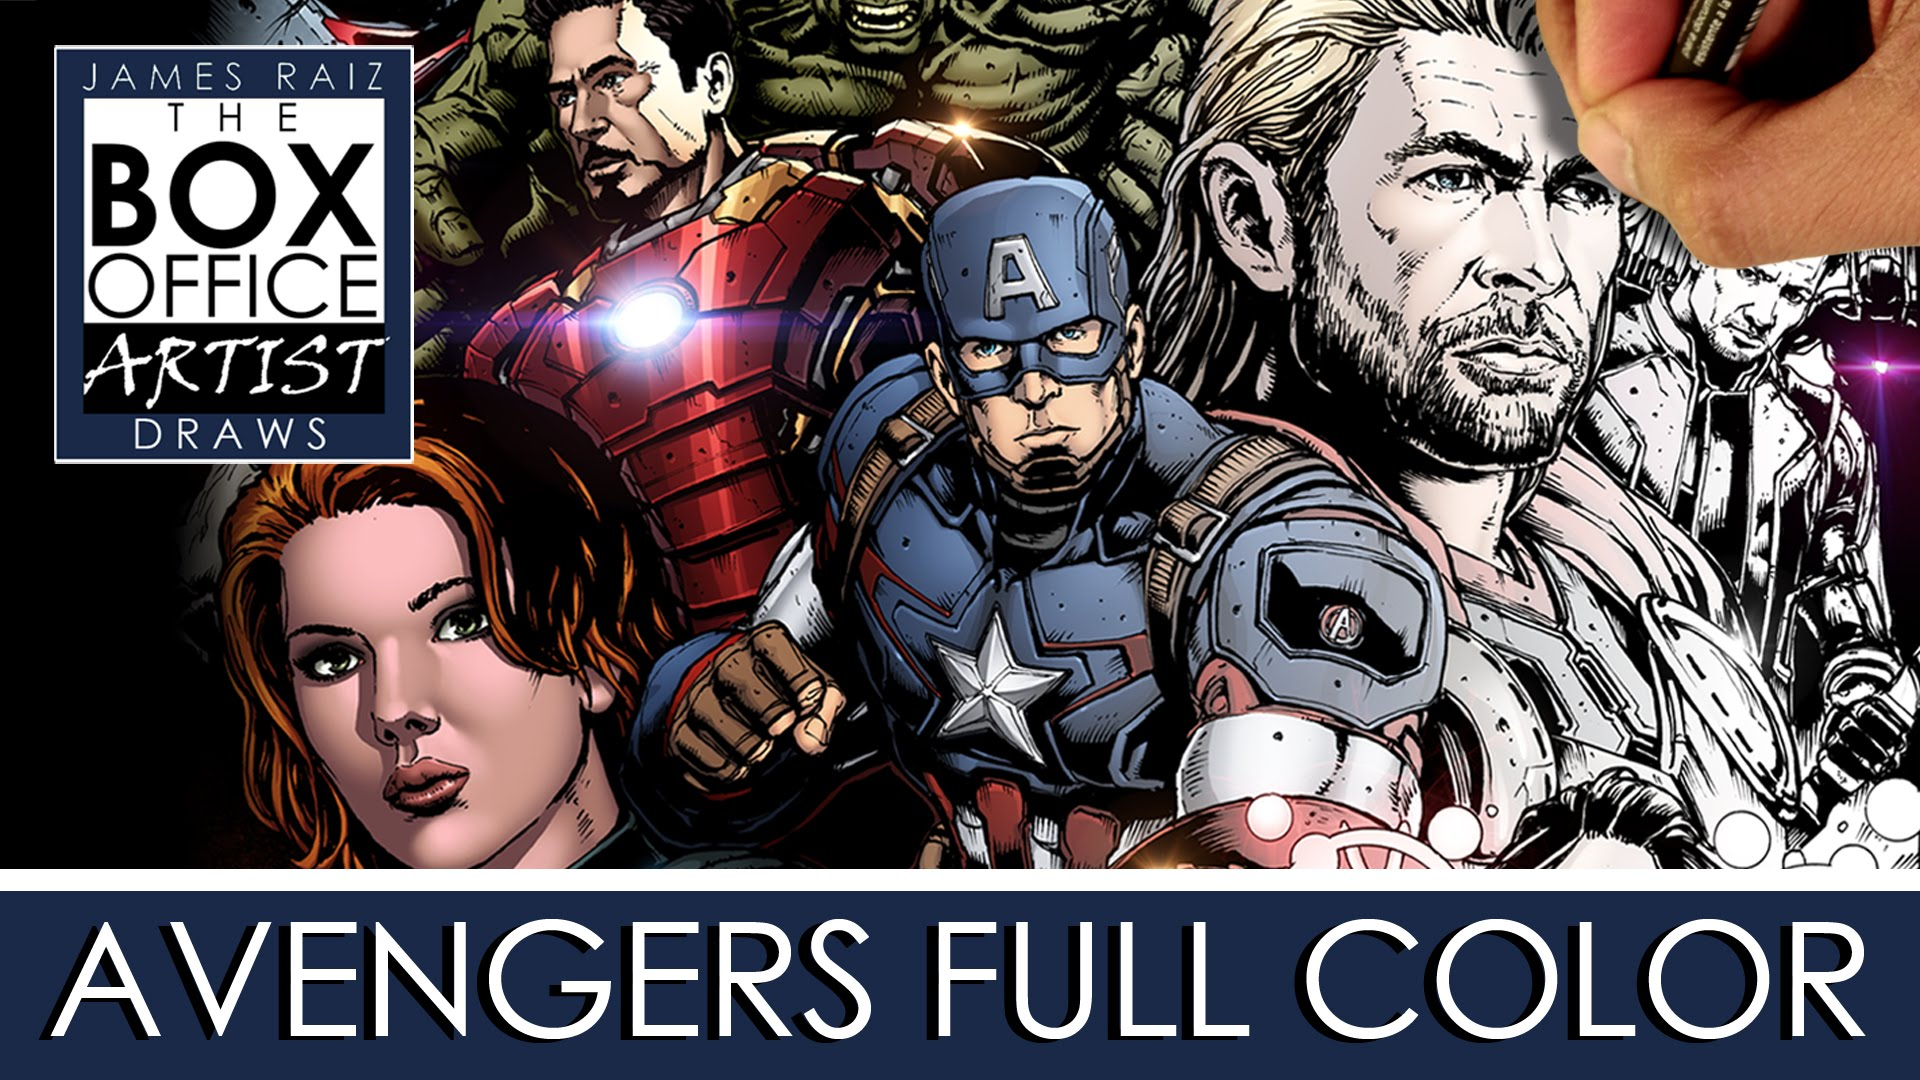 Drawn poster avenger COLOR AVENGERS: COLOR DRAWING FULL